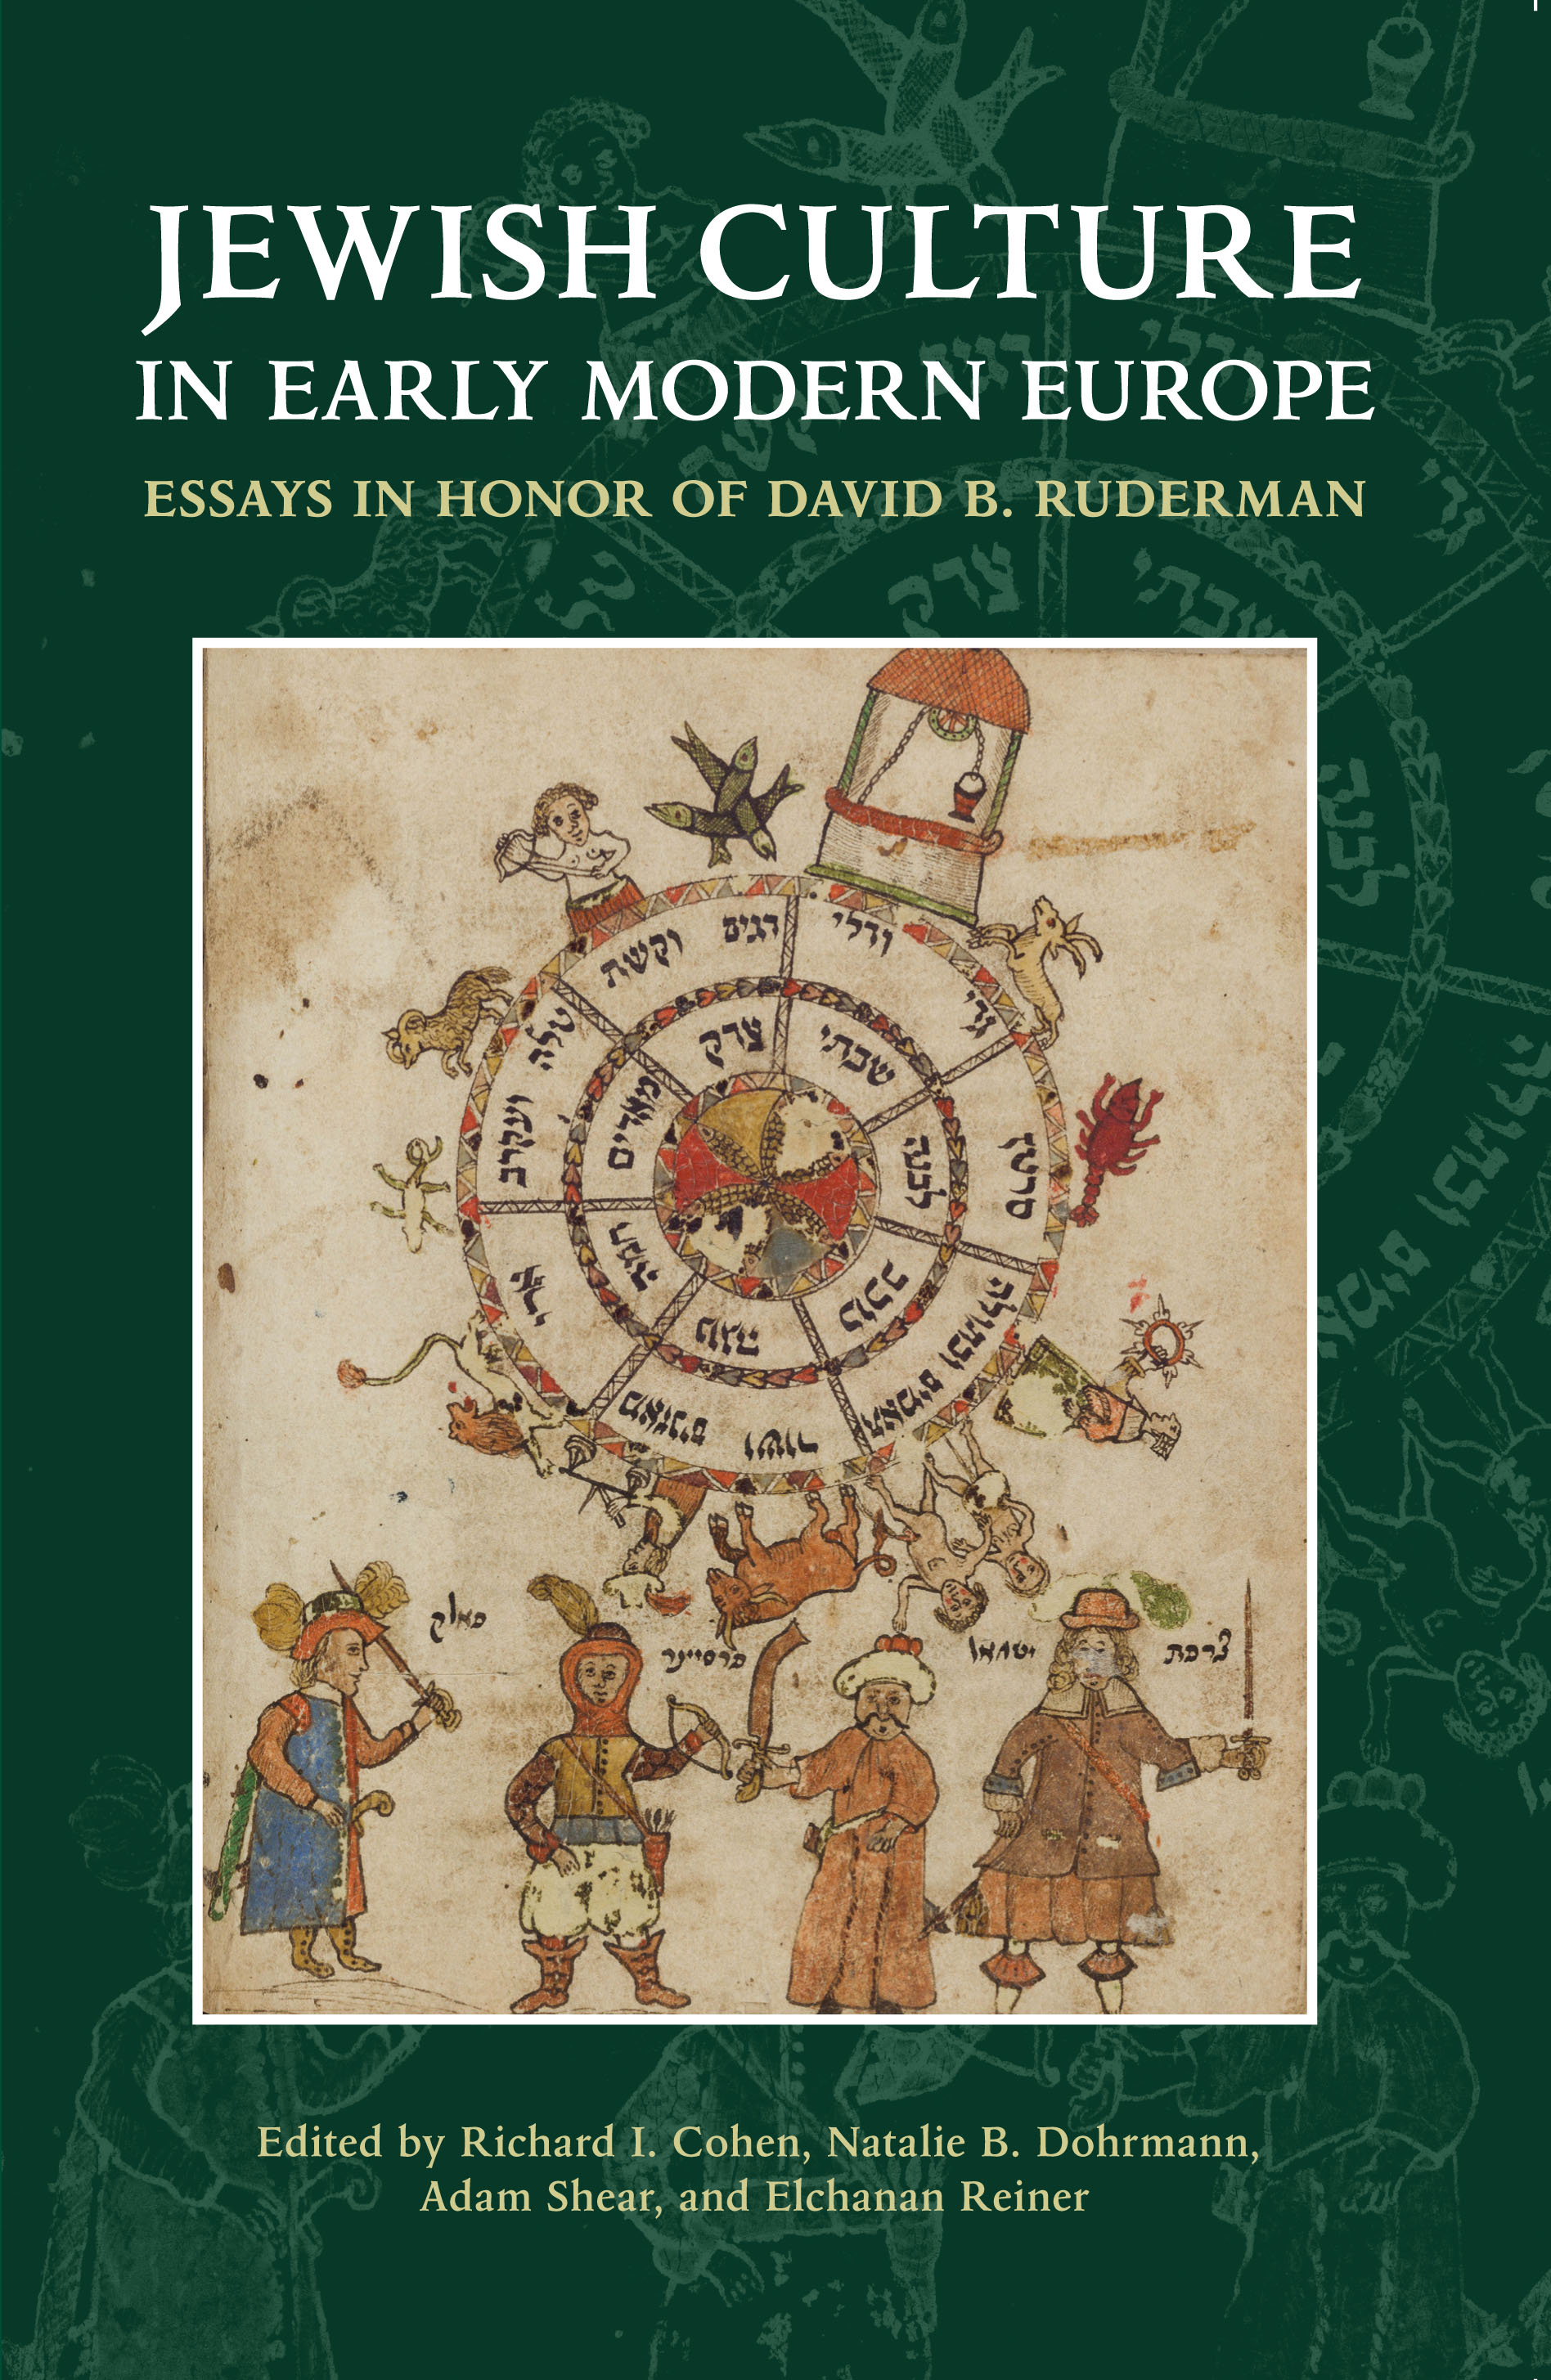 Can You Start An Essay With A Question Jewish Culture In Early Modern Europe Essays In Honor Of David B Ruderman Essay On Safety In The Workplace also How To Organize A Compare And Contrast Essay Jewish Culture In Early Modern Europe Essays In Honor Of David B  Child Development Theories Essays